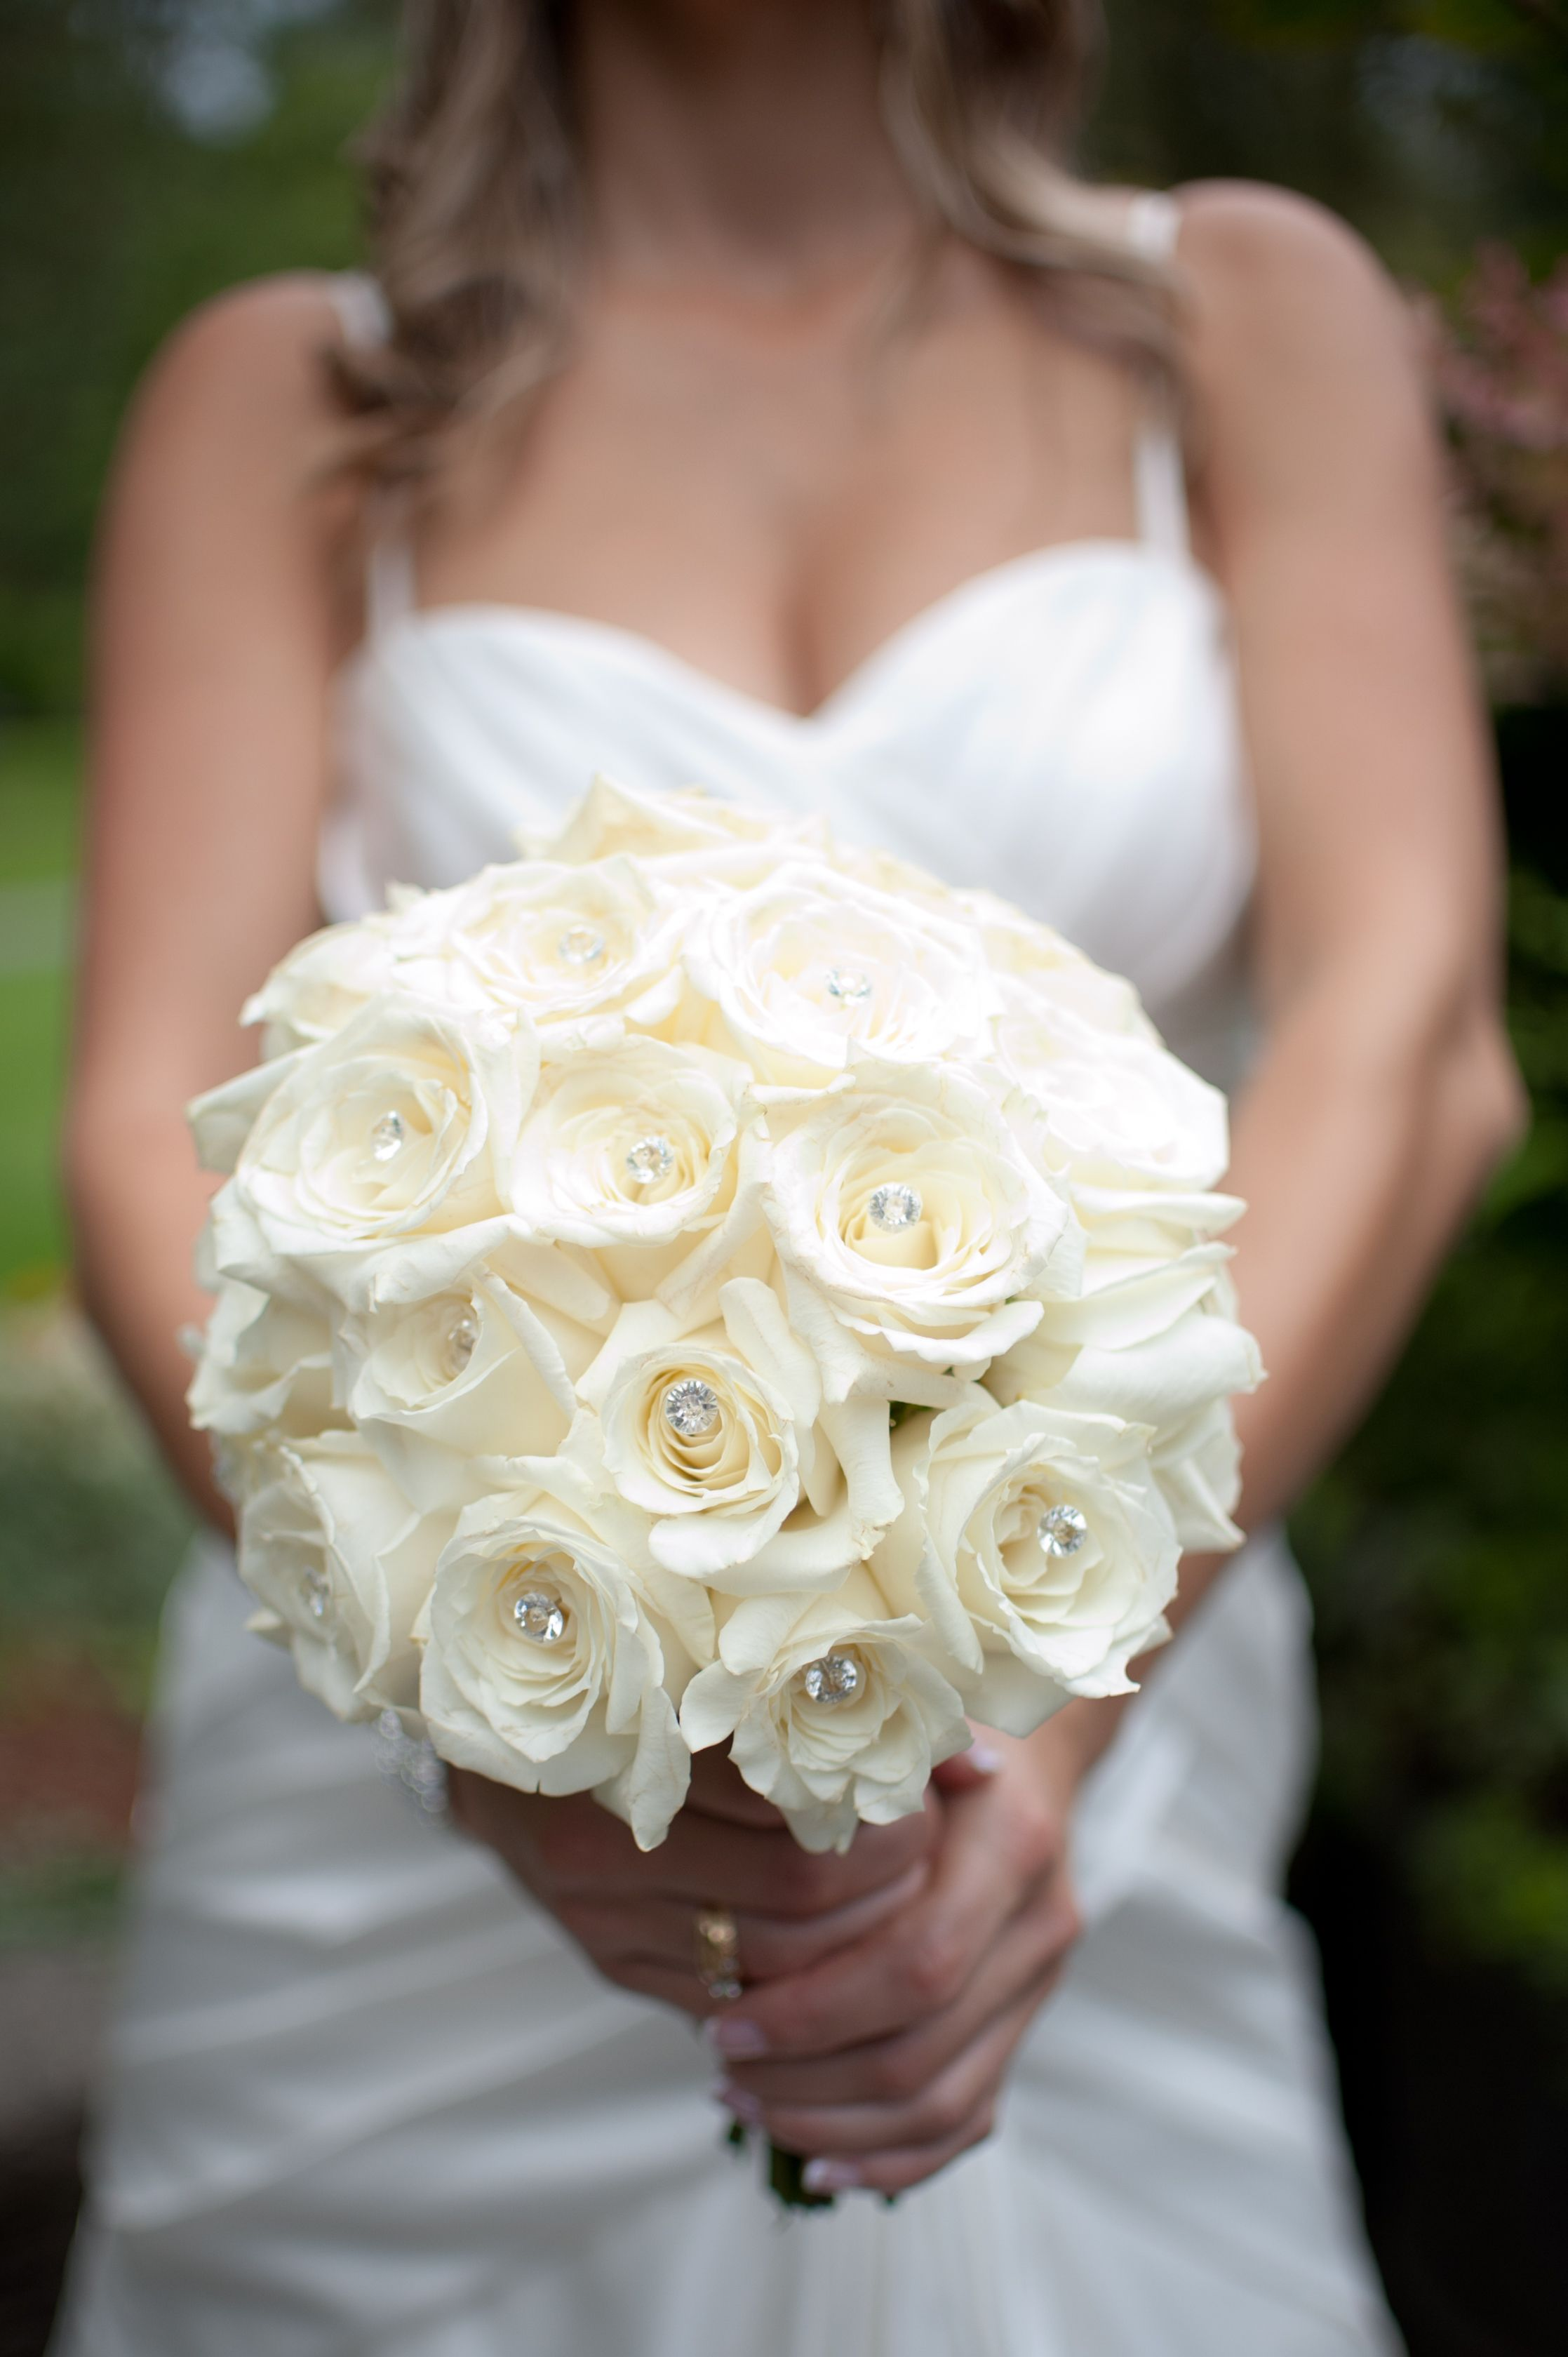 White Rose Bouquet With Bling Flowers Pinterest Wedding Rose Bouquet And Brides